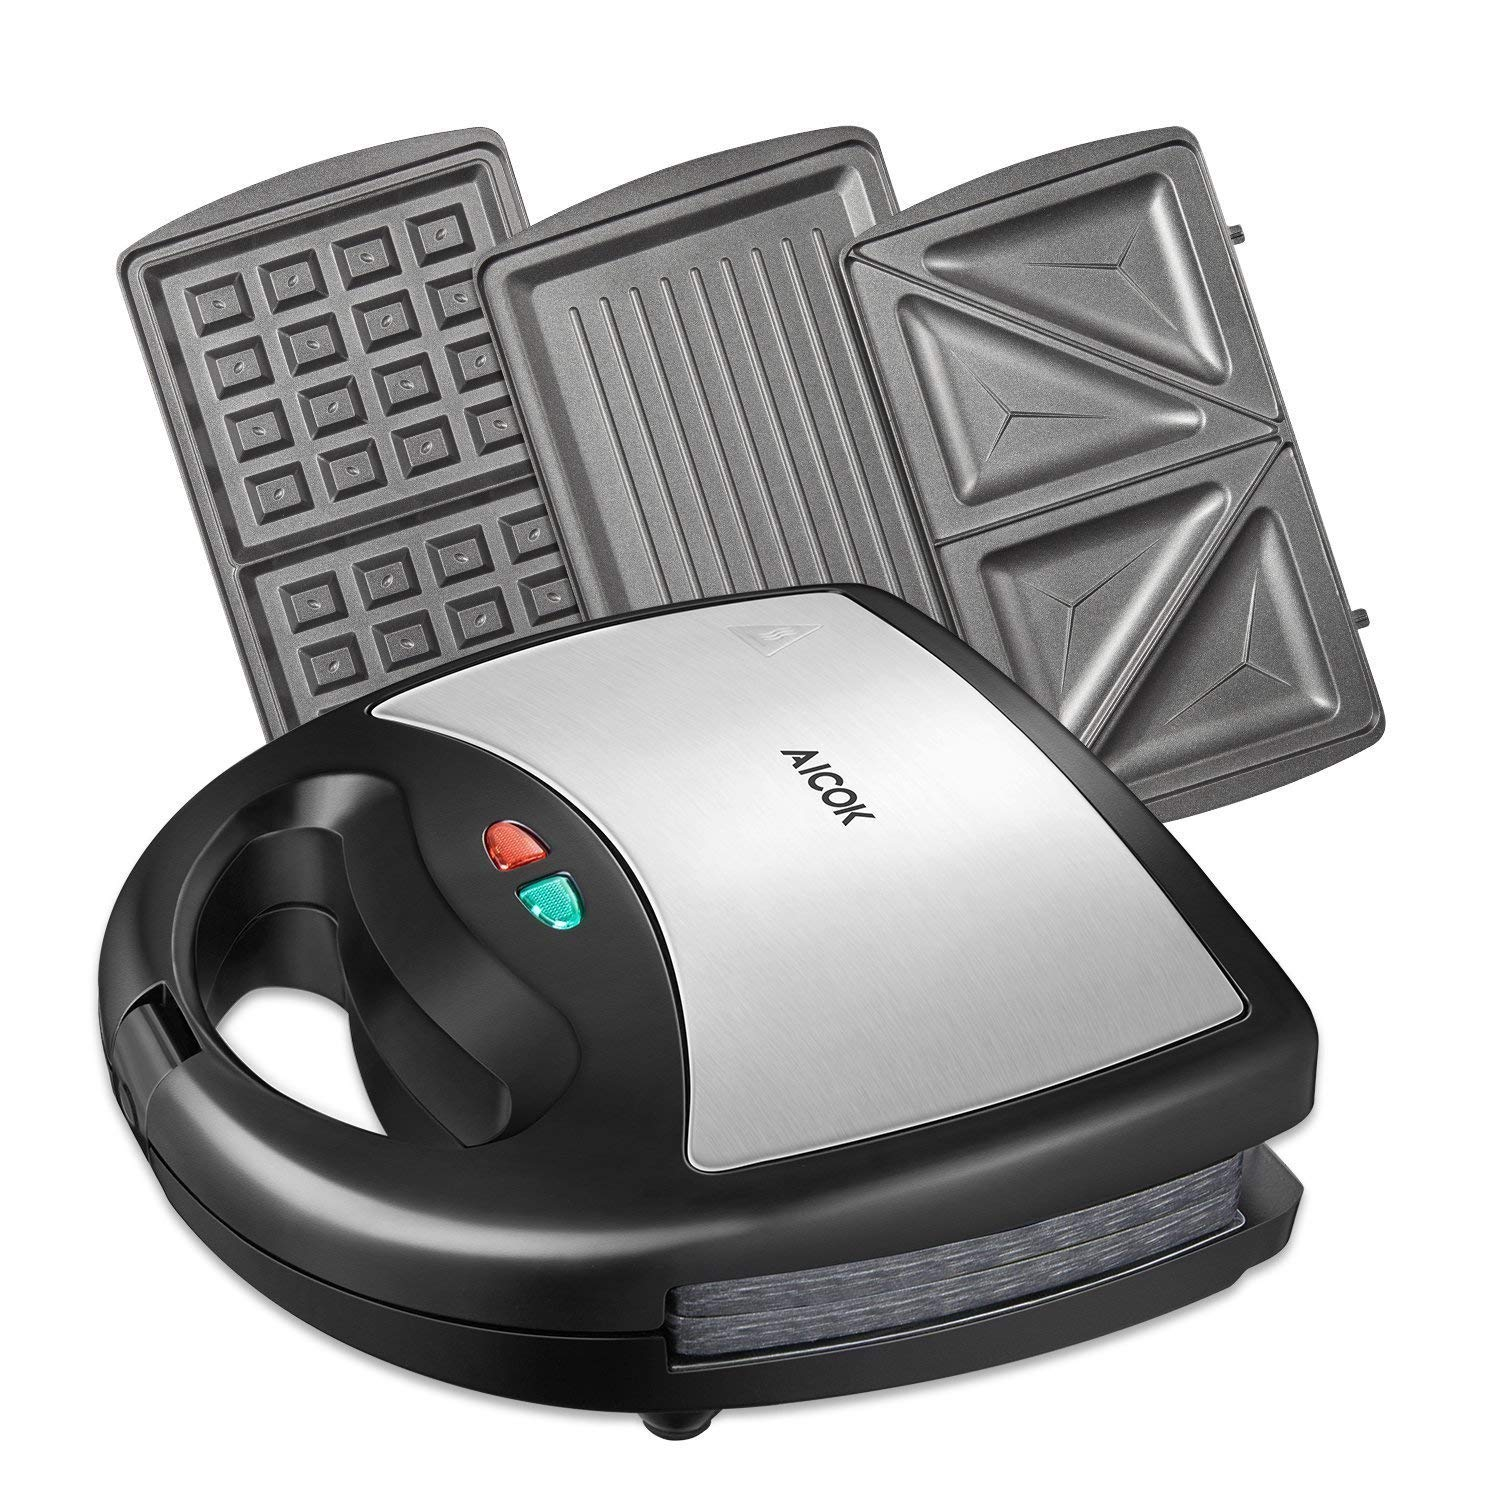 Aicok Sandwich Maker, Waffle Maker, Sandwich Grill, 800-Watts, 3-in-1 Detachable Non-stick Coating, LED Indicator Lights, Cool Touch Handle, Anti-Skid Feet, Black by AICOK